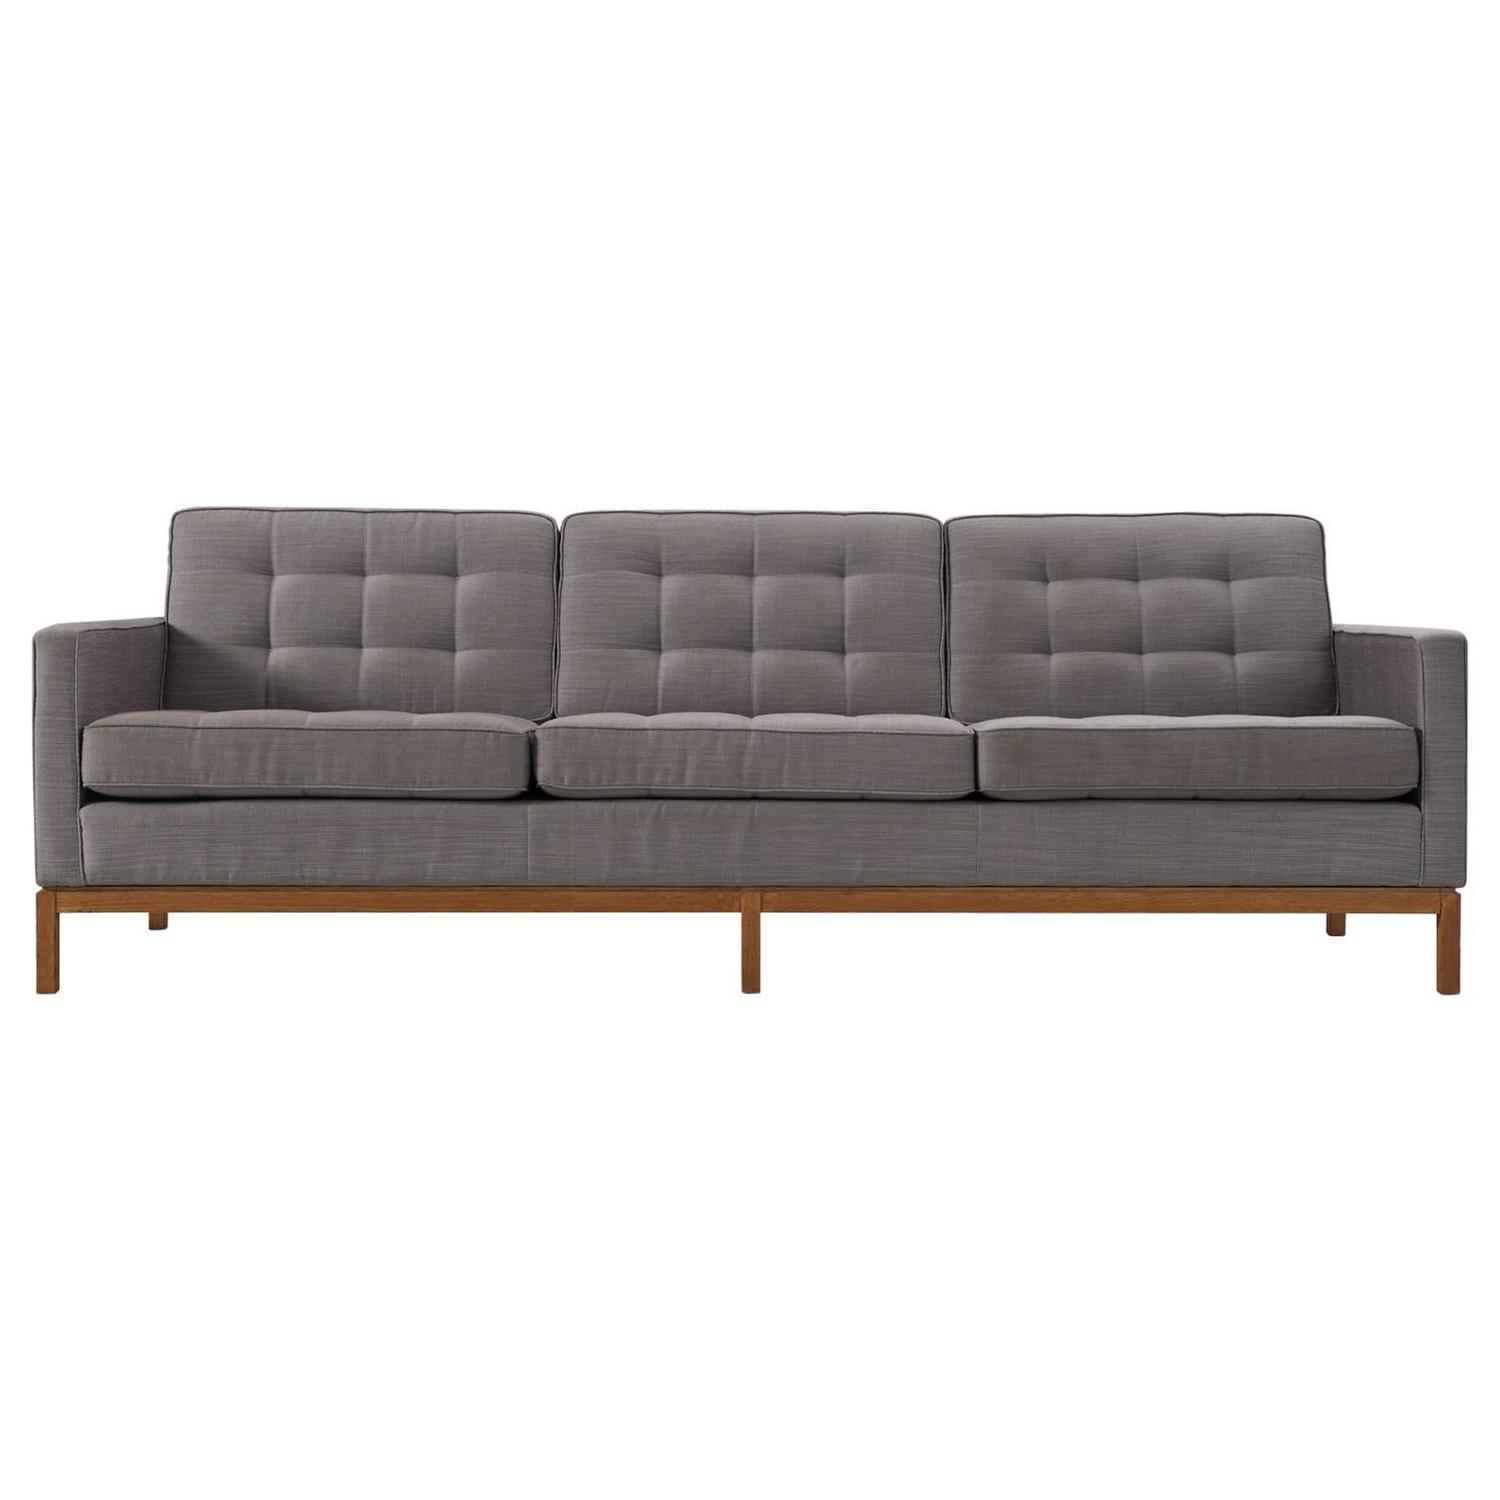 Sleek Florence Knoll Style Three Seat Sofa by Steelcase Chrome